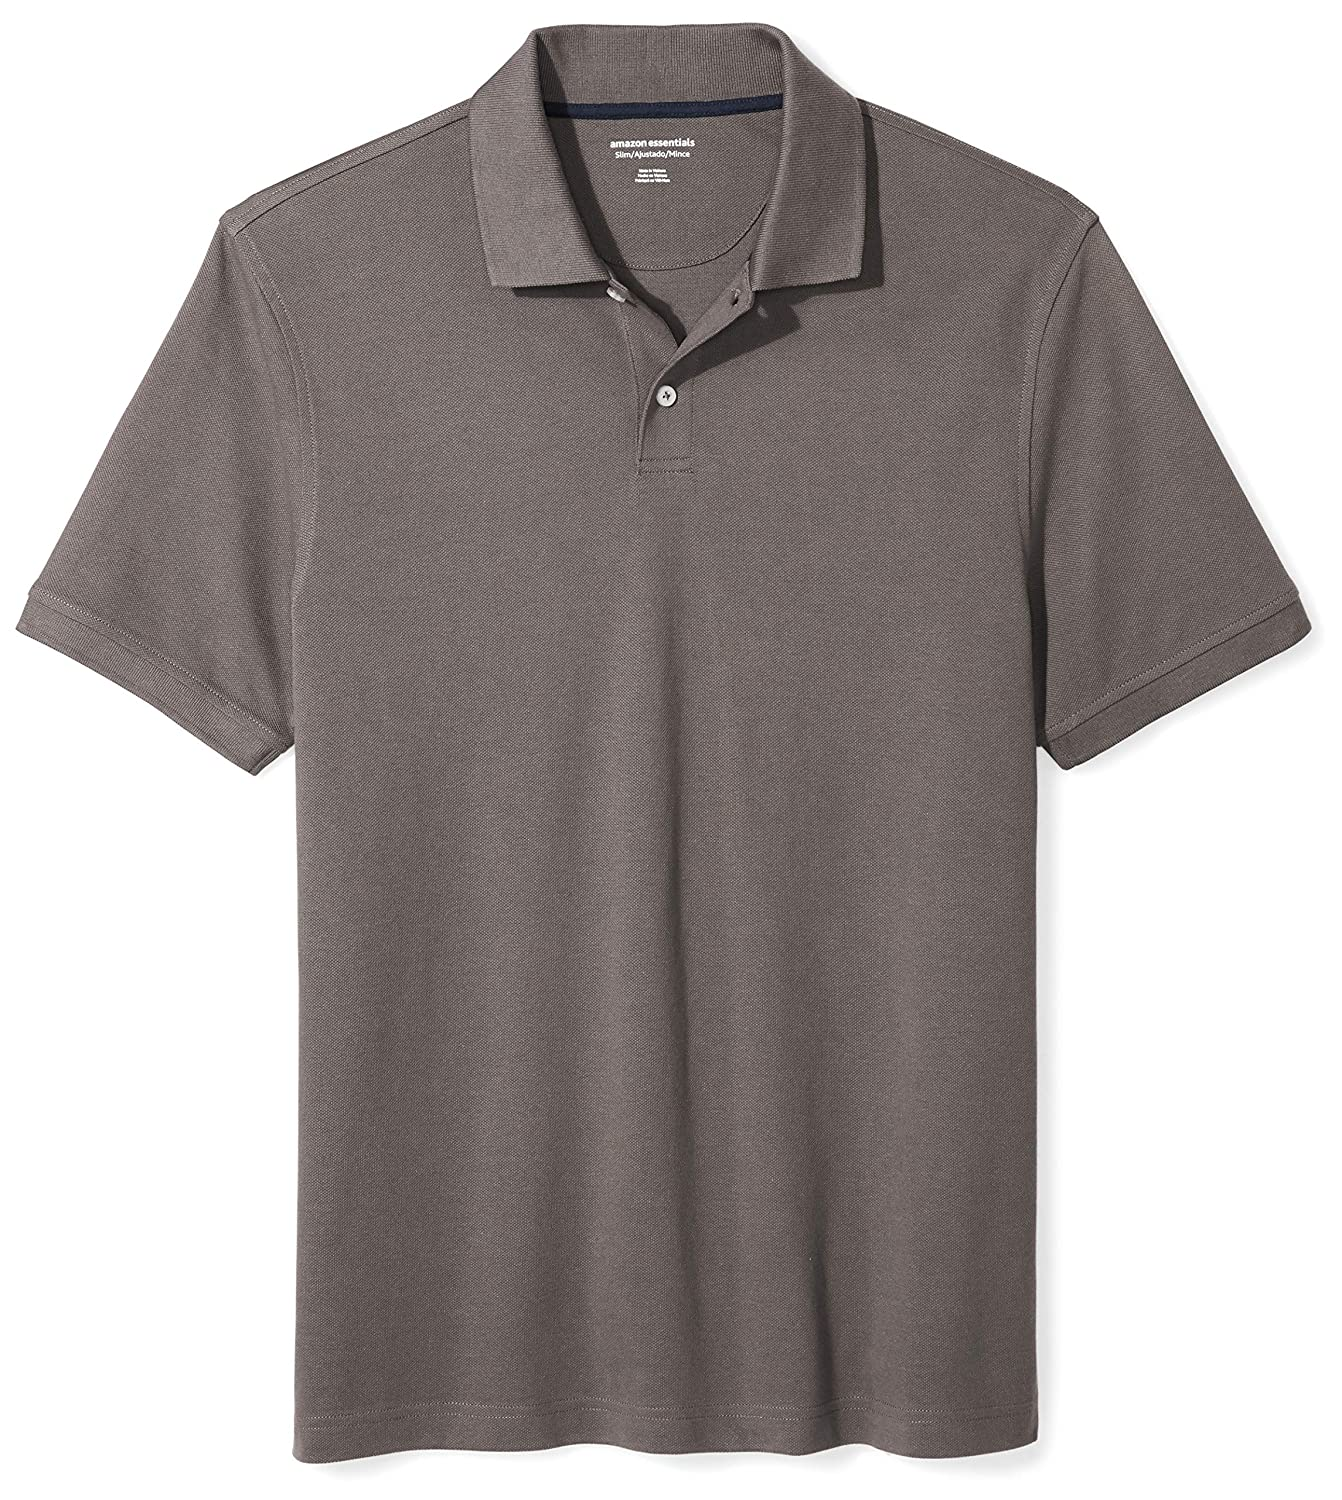 Essentials Mens Slim-Fit Cotton Pique Polo Shirt